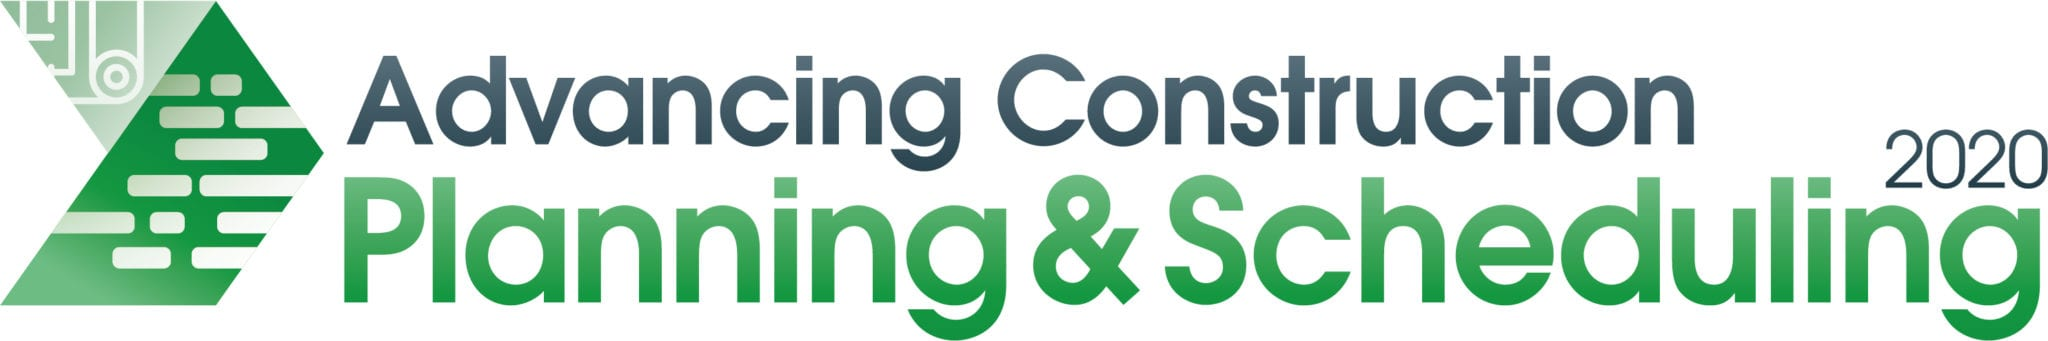 Advancing Construction Planning and Scheduling 2020 logo